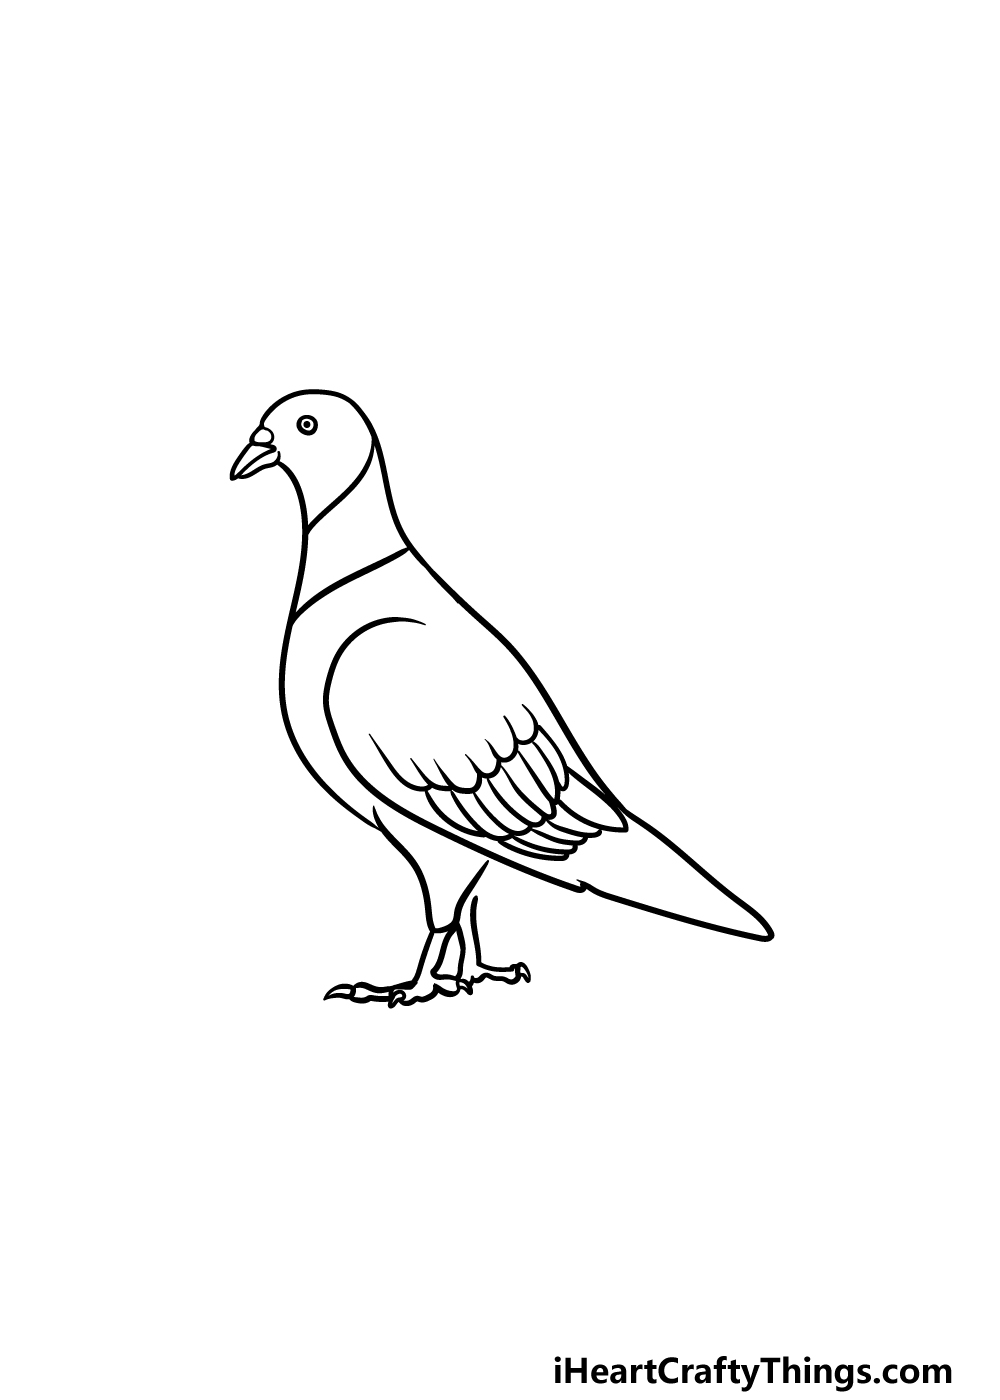 drawing a pigeon step 3